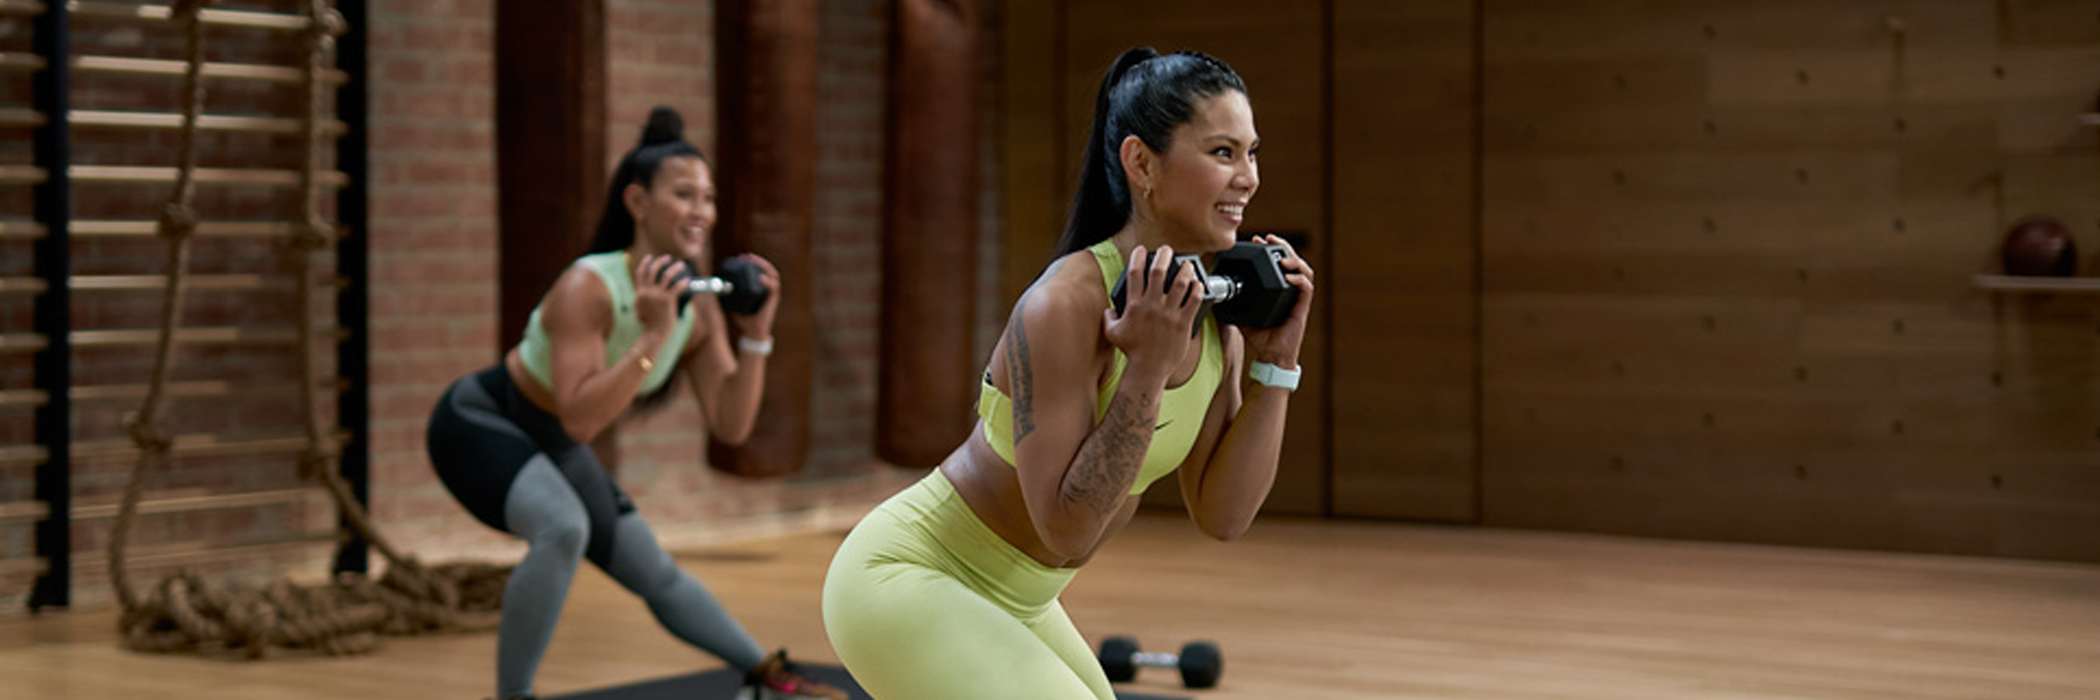 Photograph of Apple Fitness+ trainers exercising with weights.